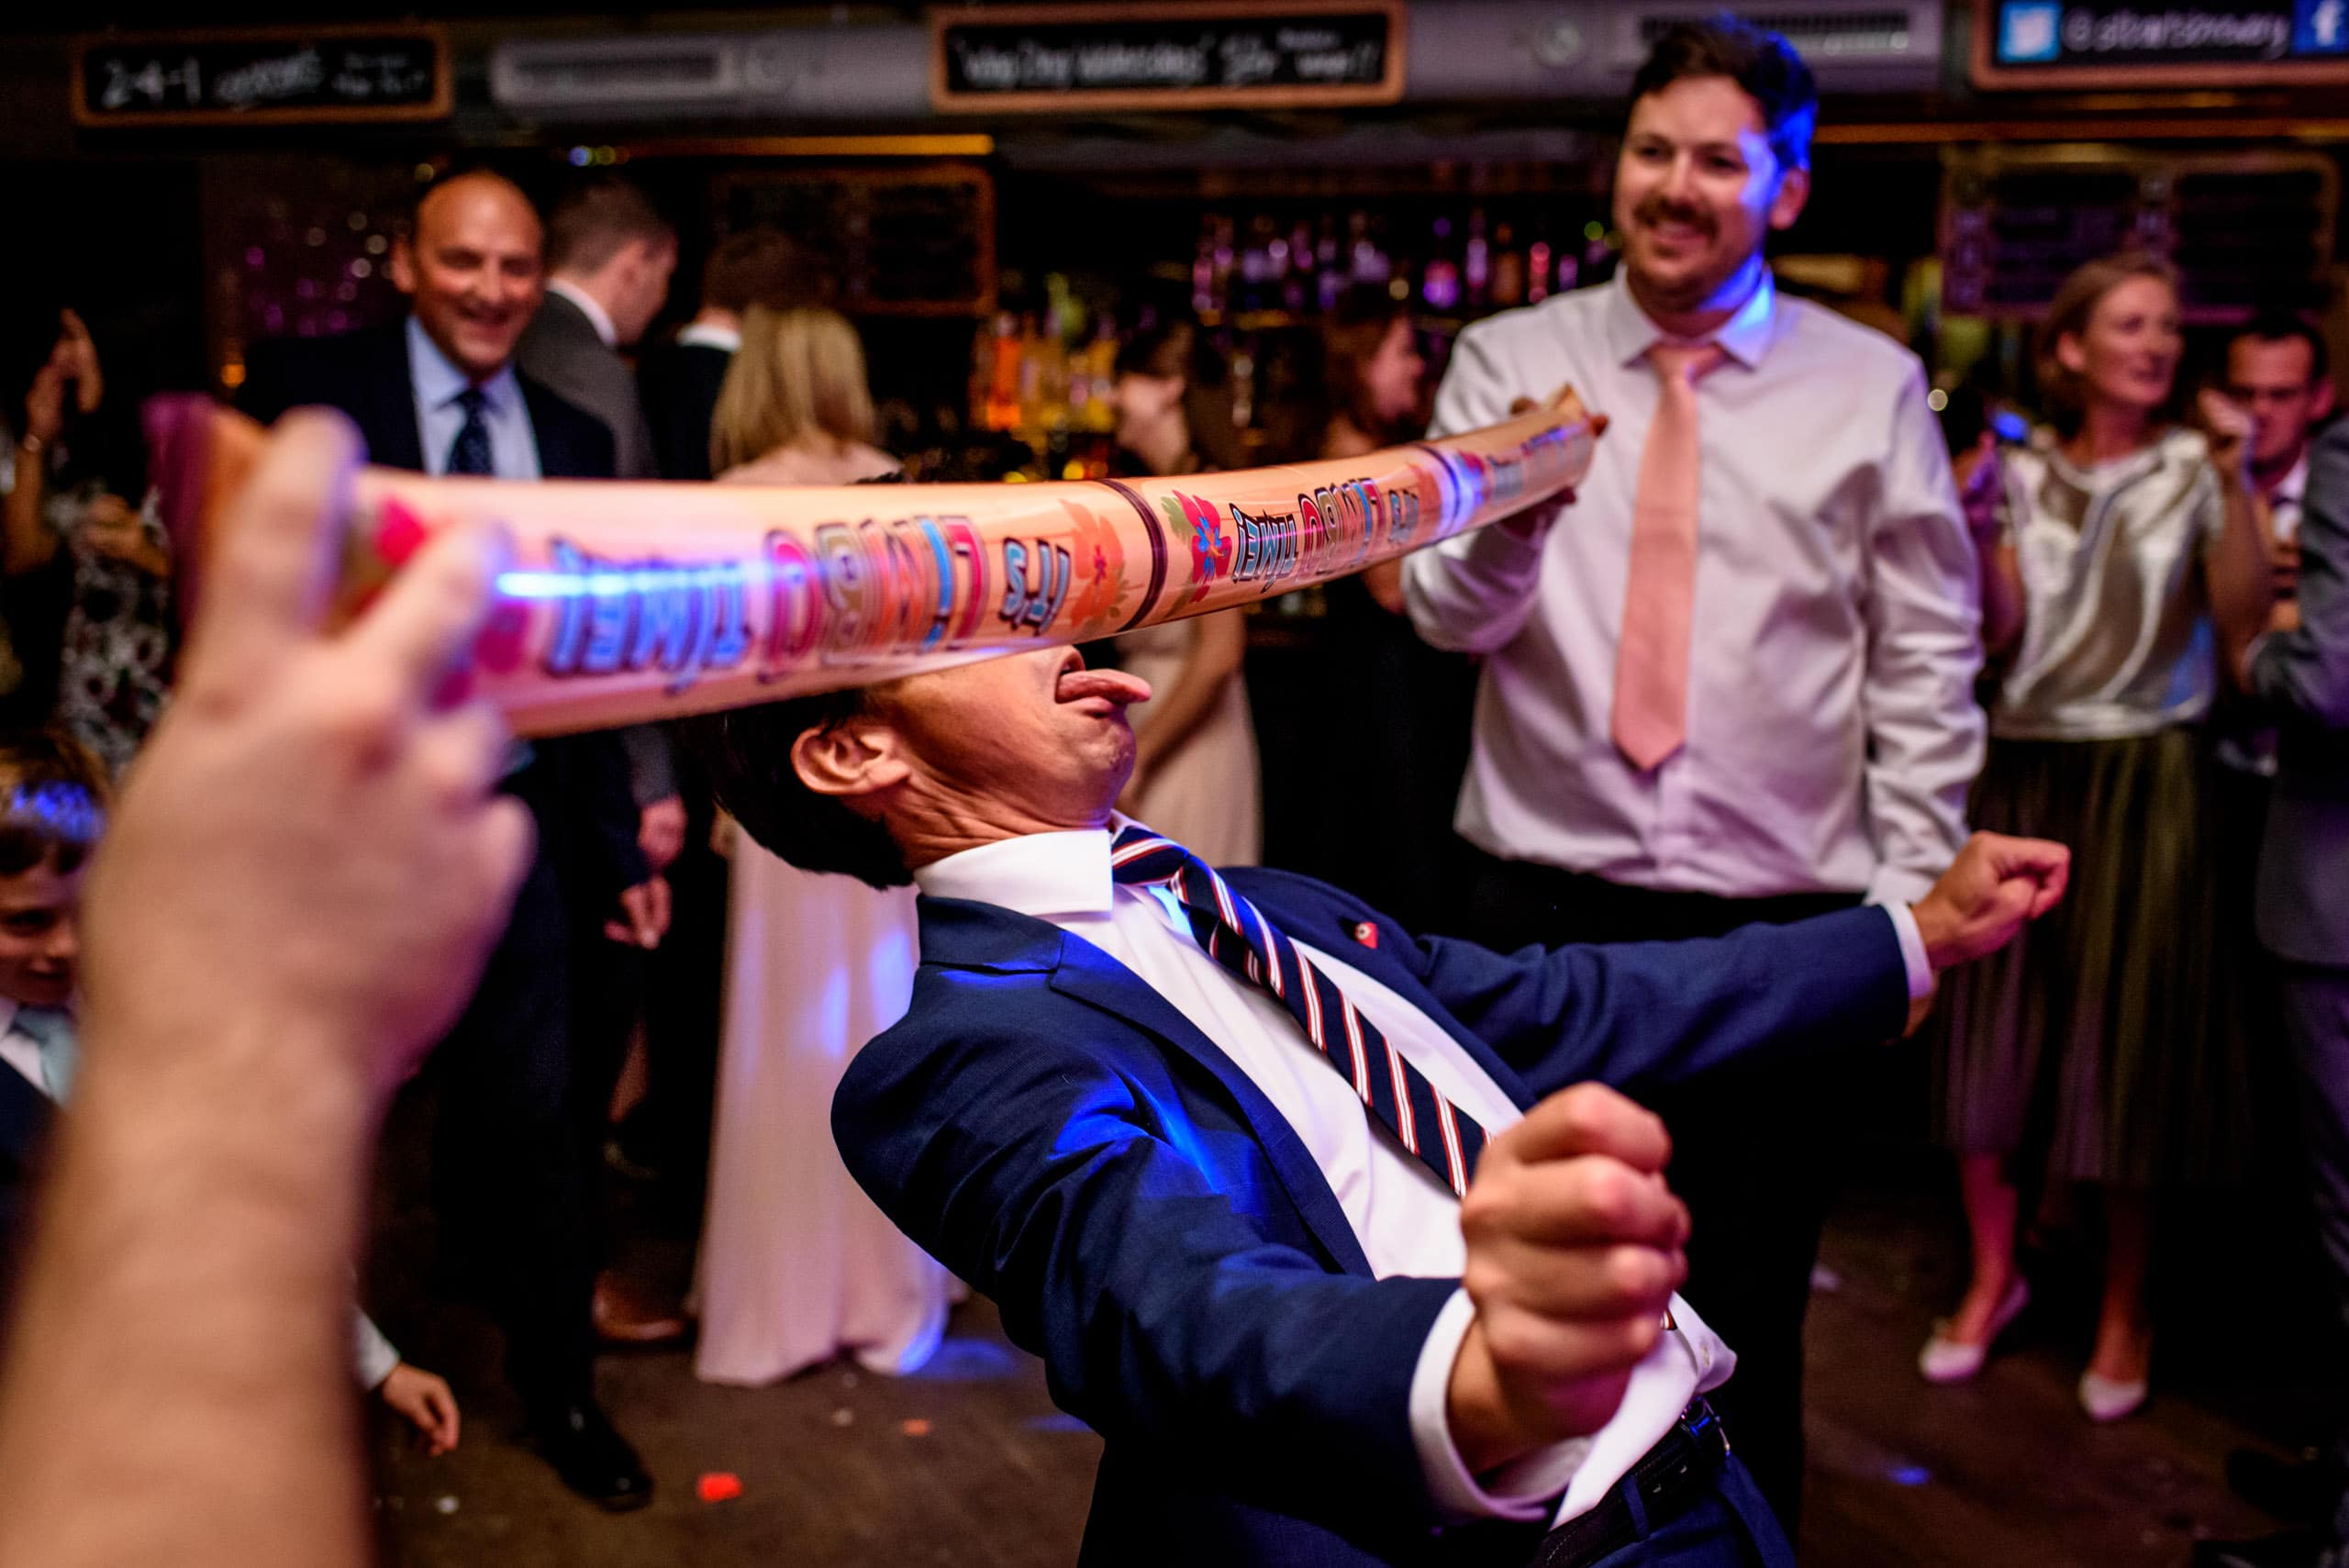 Party limbo at St Bart's Brewery wedding in Smithfields, London